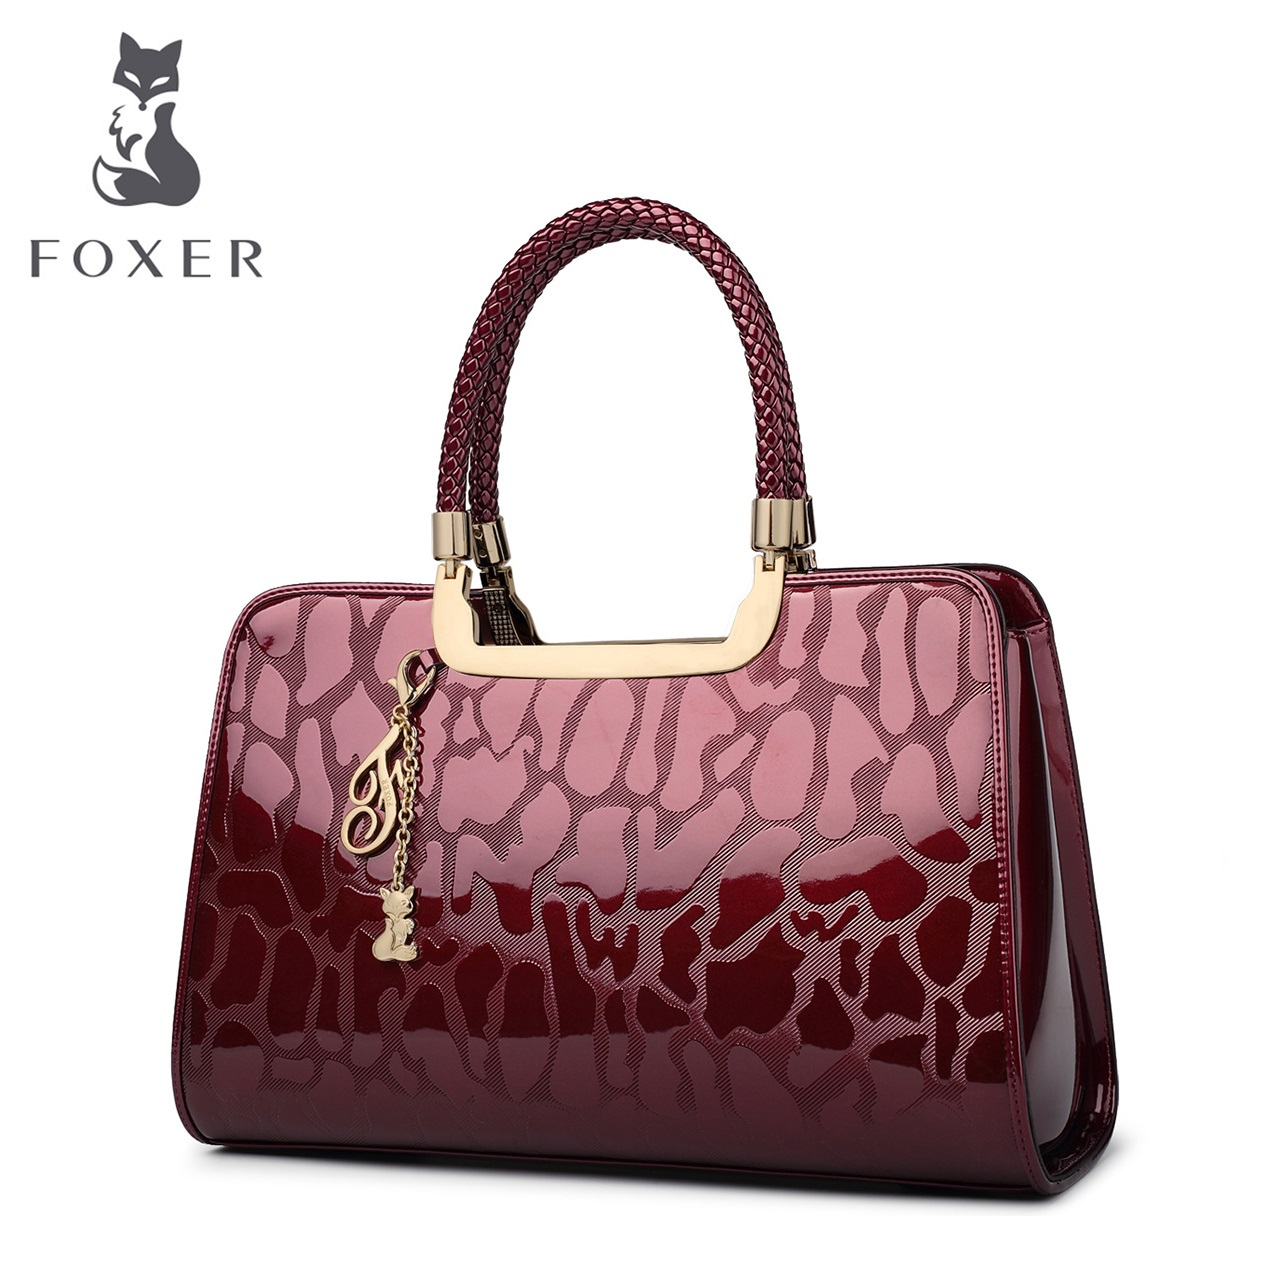 Golden Fox middle-aged lady bag patent leather handbag shoulder bag Europe and the United States 2018 new female big bag leather handbag